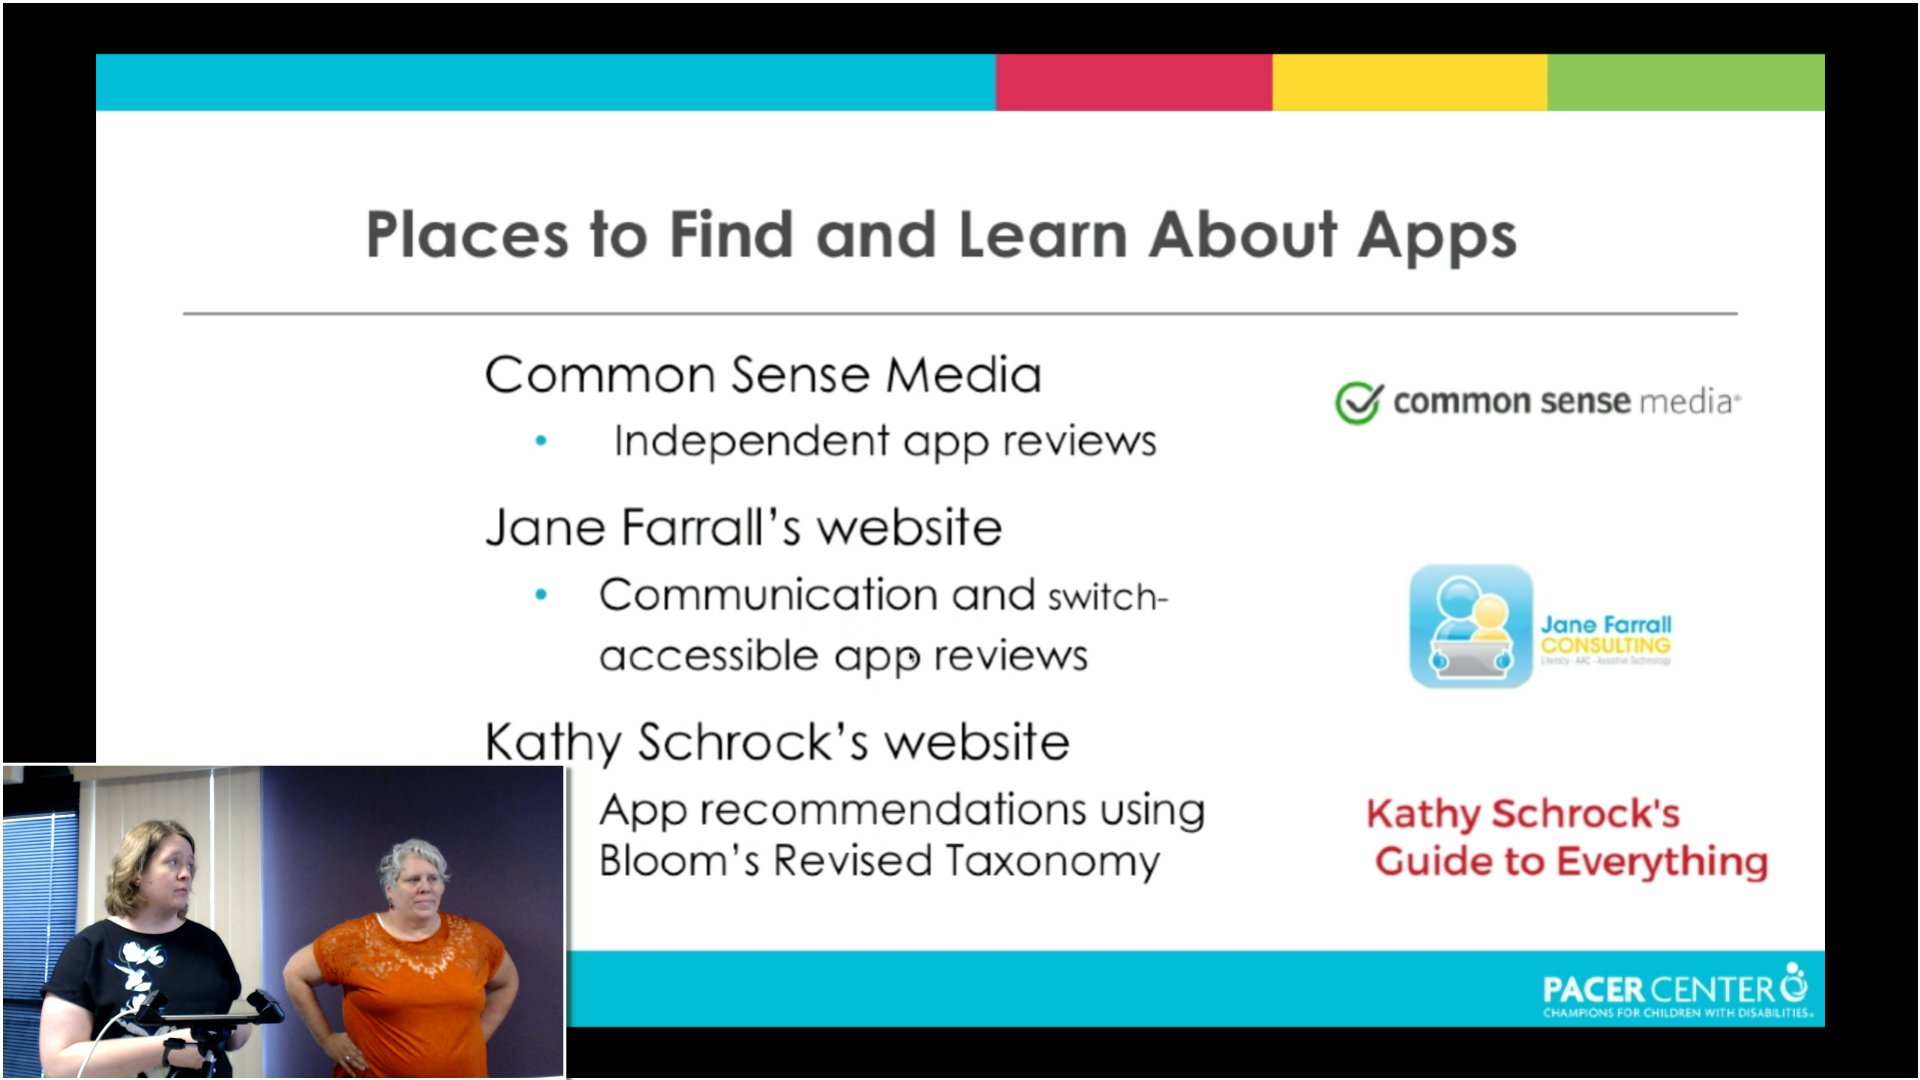 Too Many Apps for That? How to Find, Choose, and Evaluate